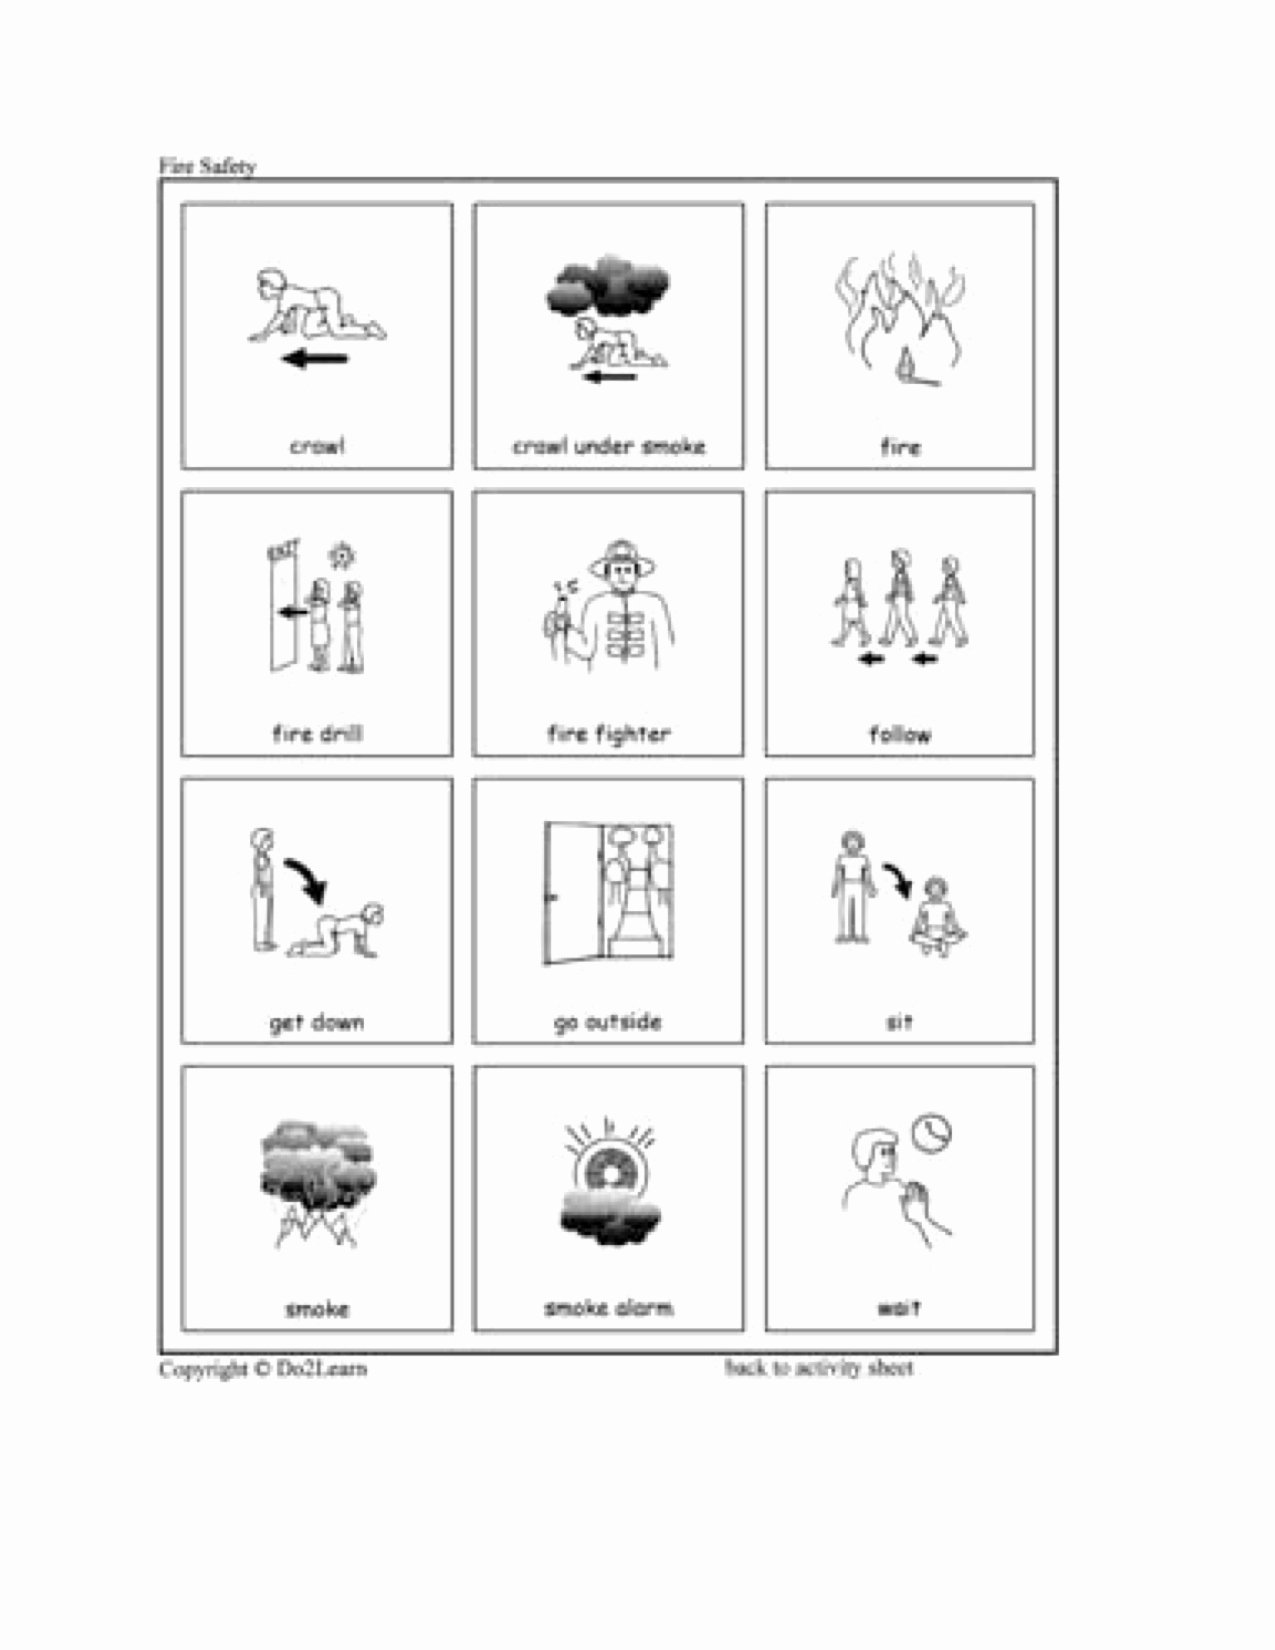 Fire Safety Worksheets for Preschoolers top Fire Safety